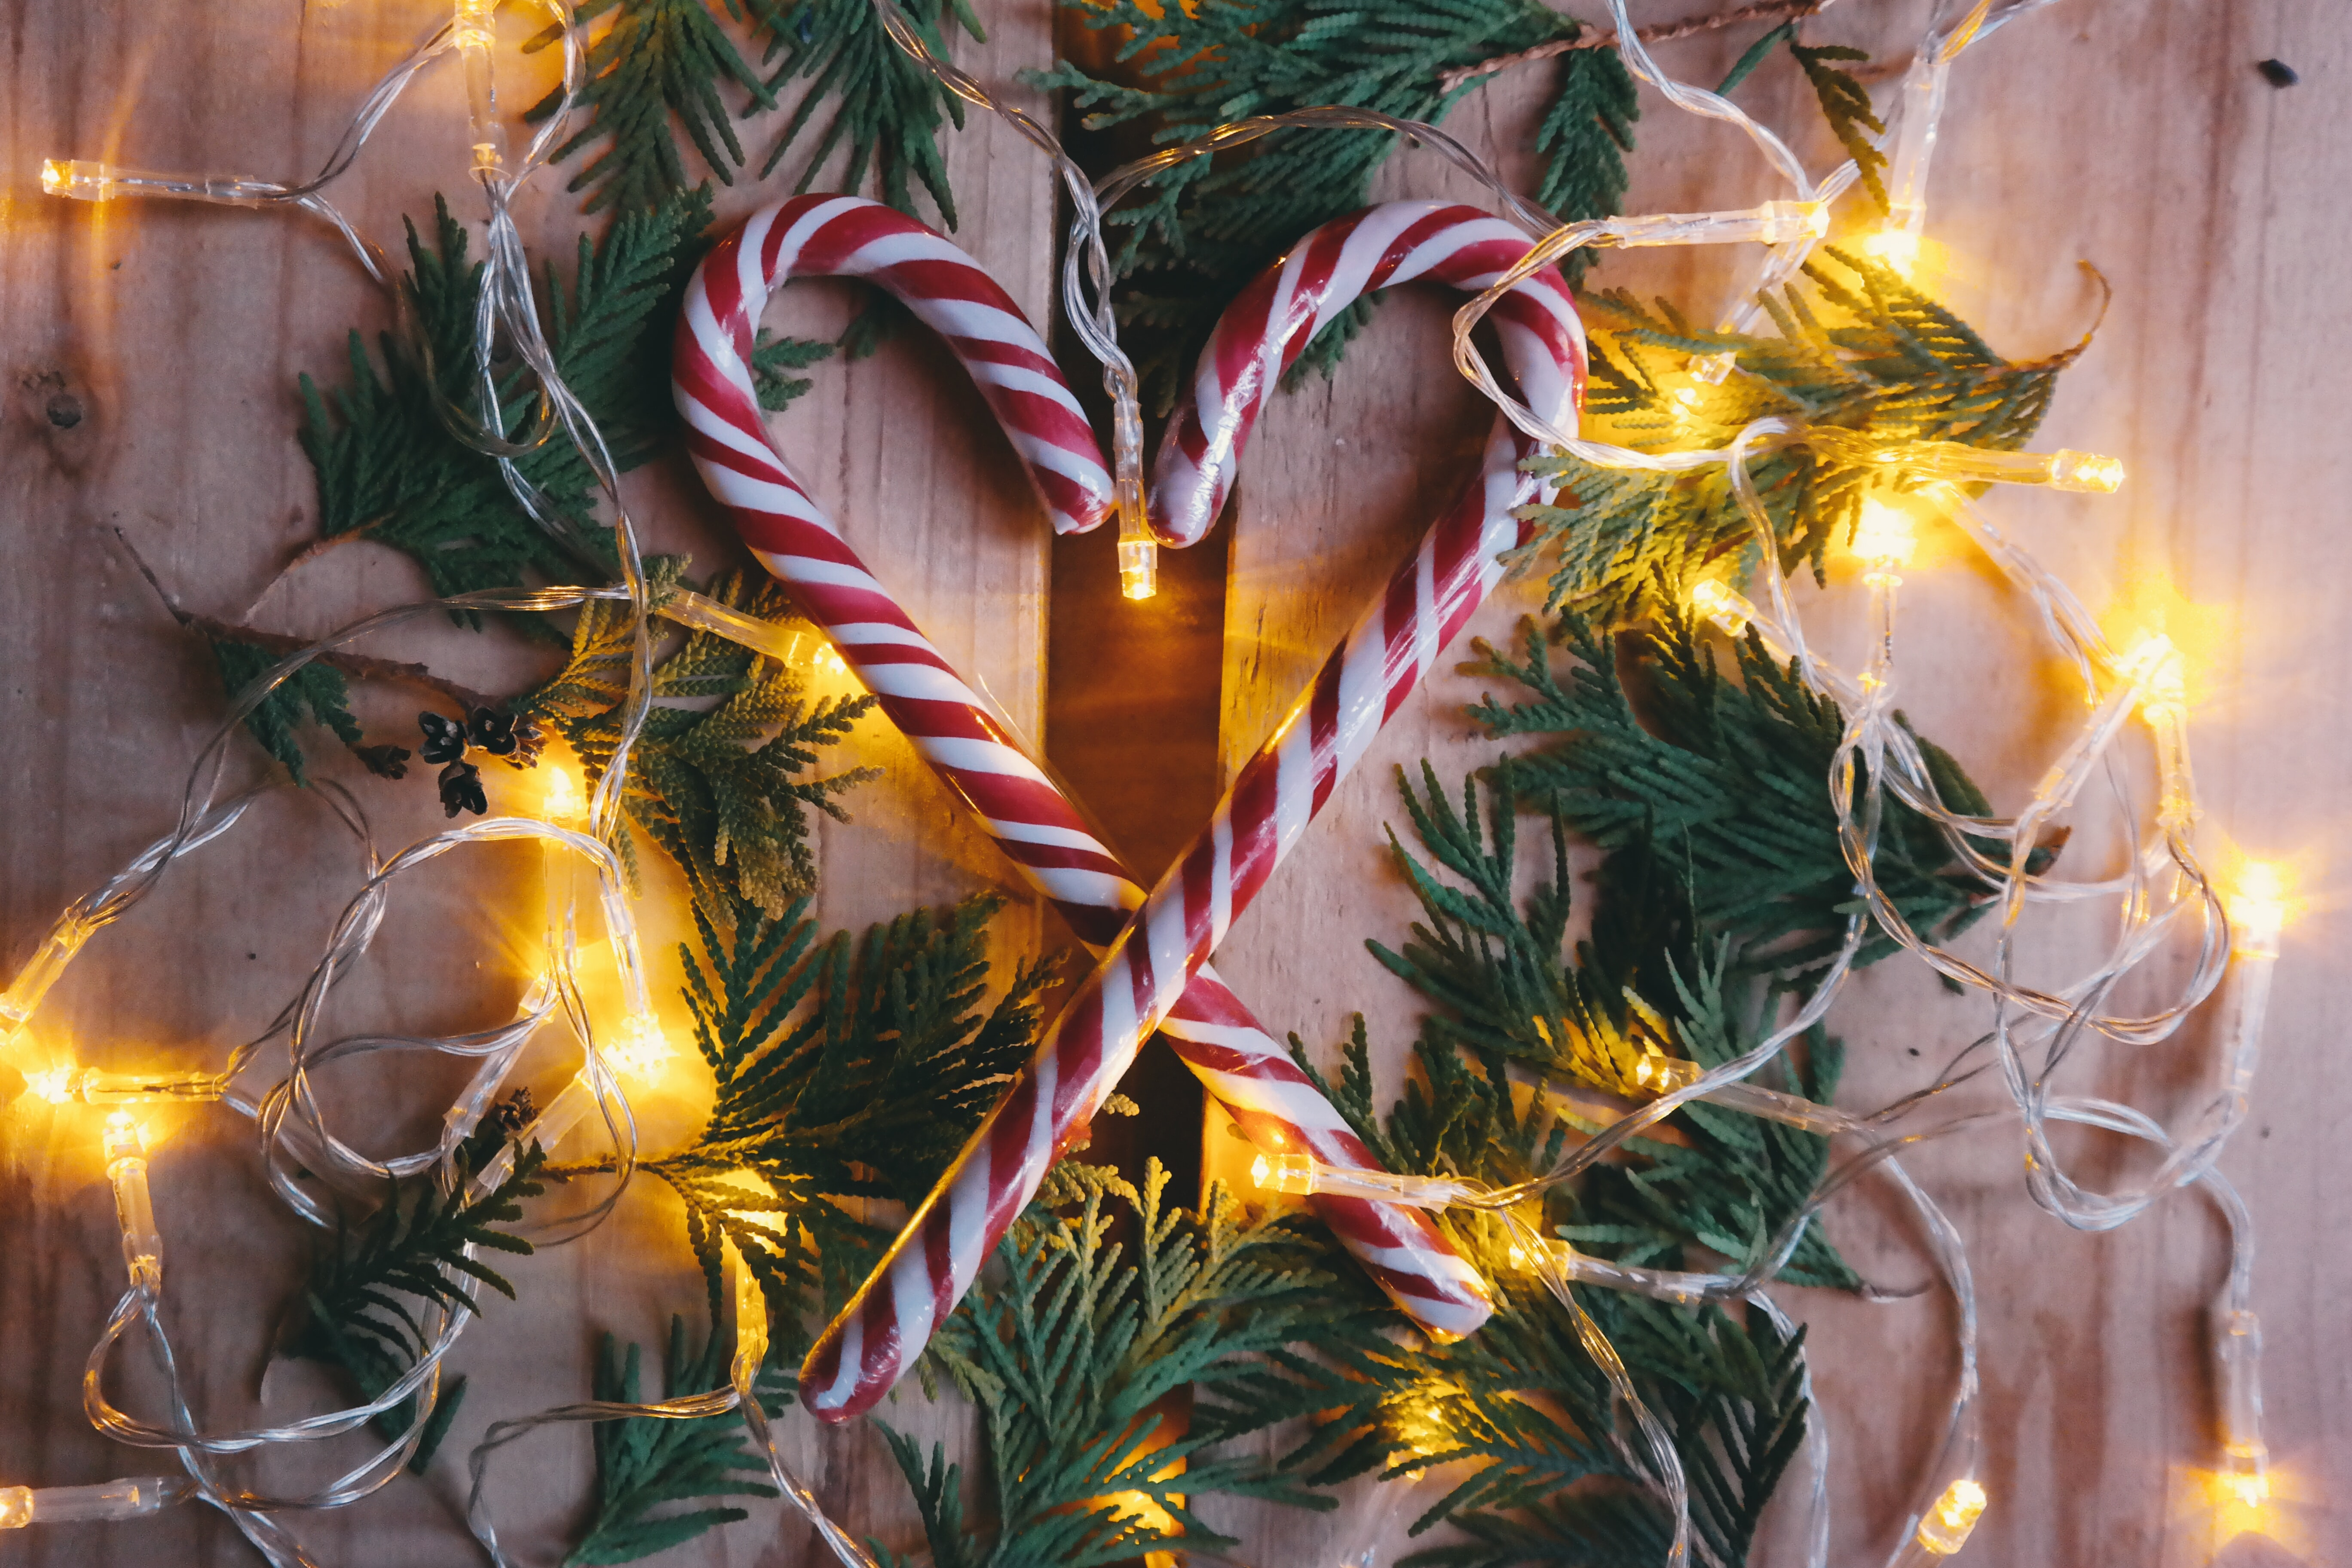 Candy canes sitting inside of a wreath, surrounded by Christmas lights.